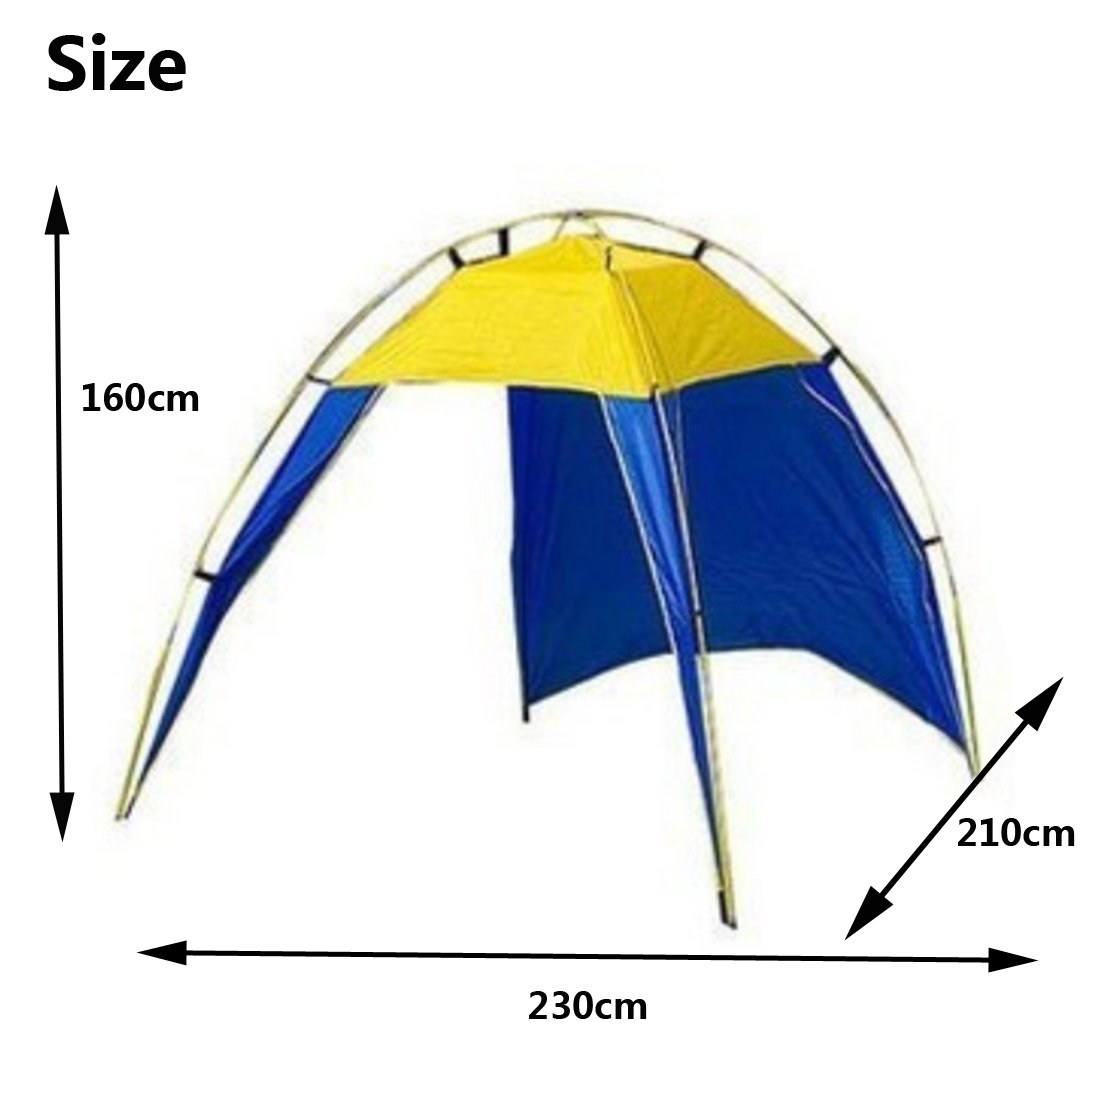 High quality 3 4 Persons Triangle Beach Tent Picnic tents Ultralight Canopy UV Sun Shade Shelter tourist tent Outdoor C&ing-in Tents from Sports ...  sc 1 st  AliExpress.com & High quality 3 4 Persons Triangle Beach Tent Picnic tents ...